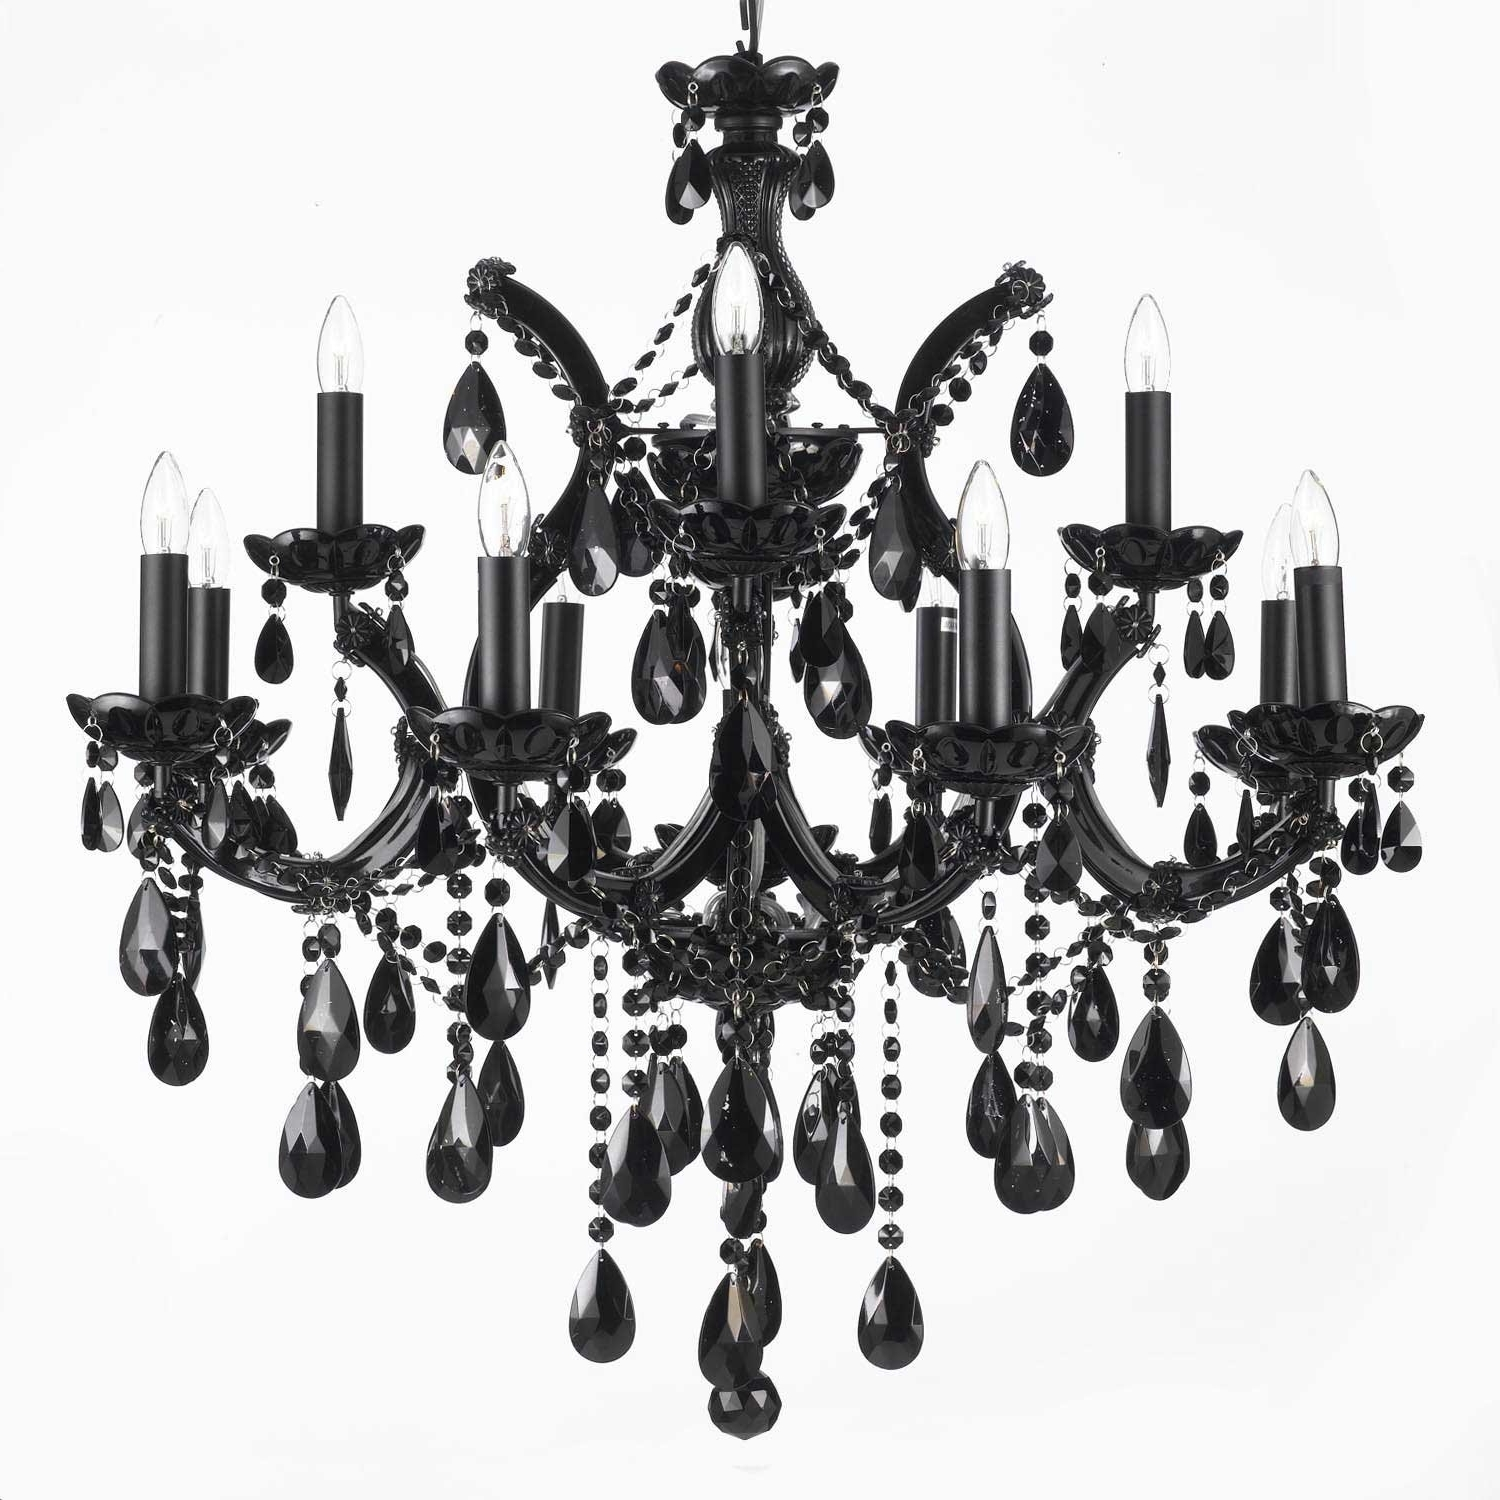 Jet Black Chandelier Crystal Lighting 30X28 – – Amazon For Most Recently Released Modern Black Chandelier (Gallery 9 of 15)